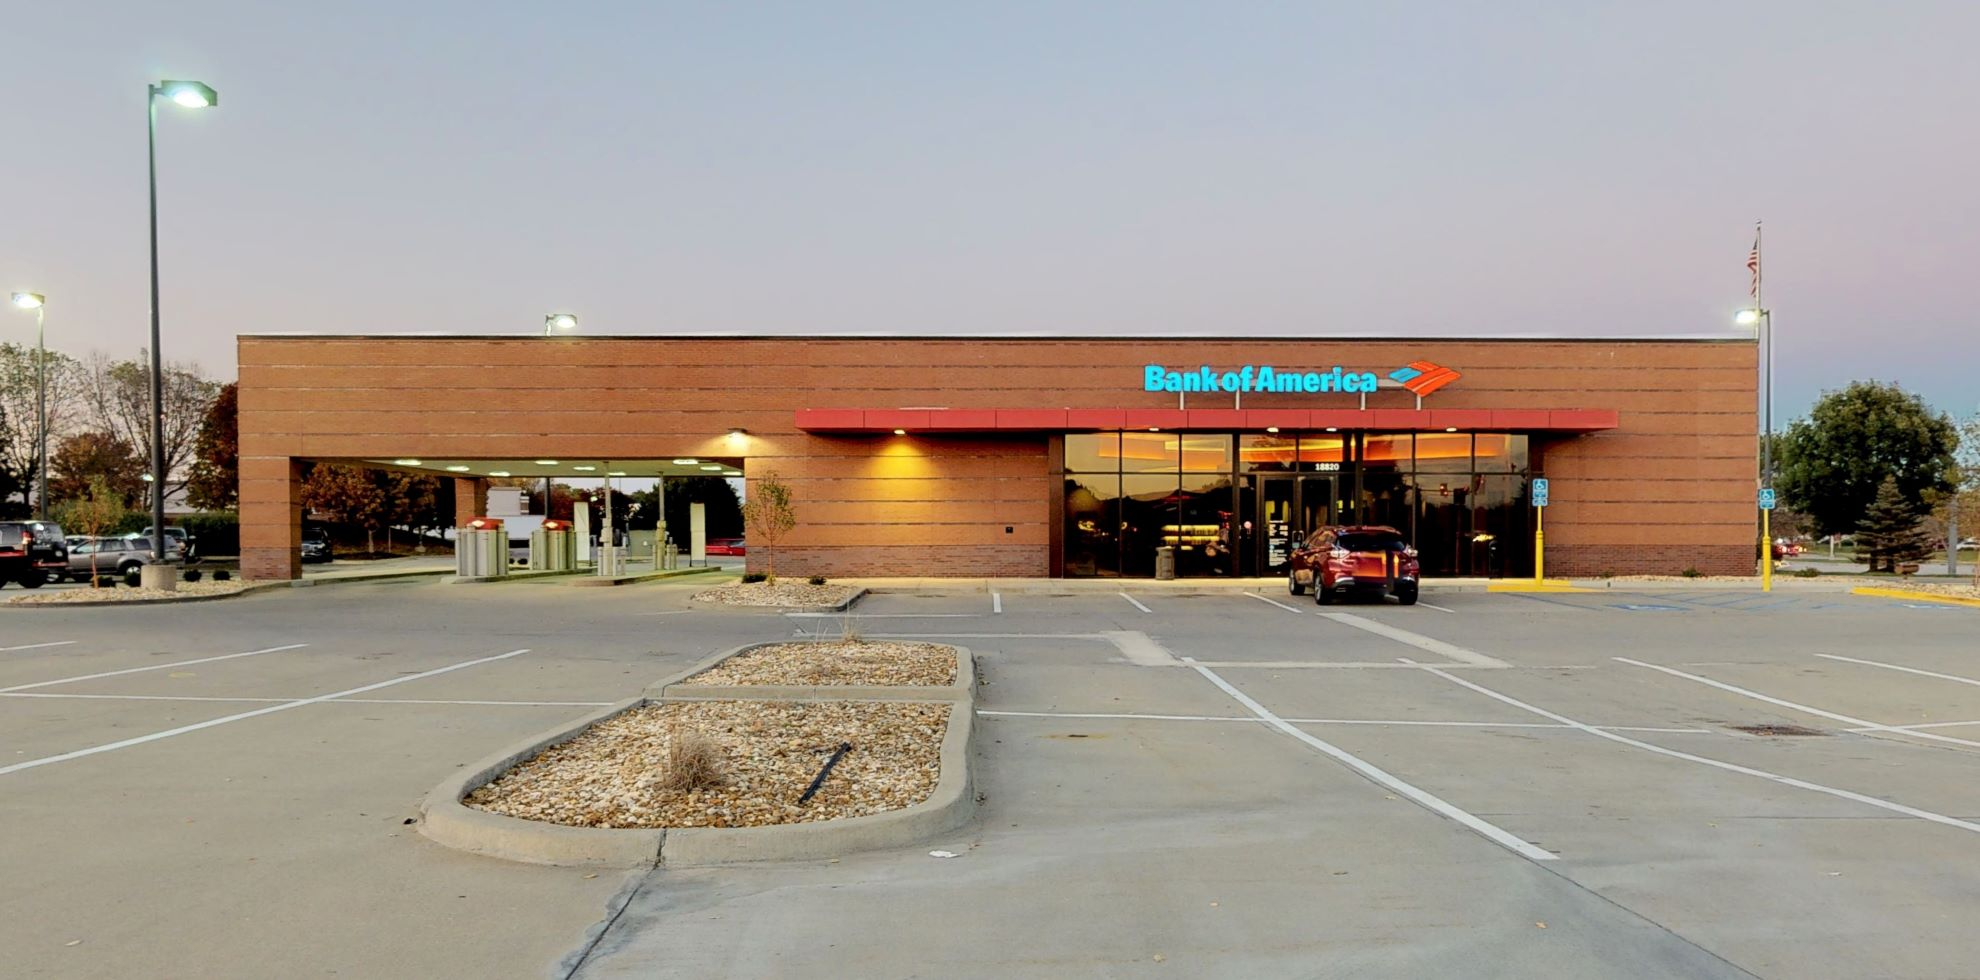 Bank of America financial center with drive-thru ATM | 18820 E US Highway 40, Independence, MO 64055